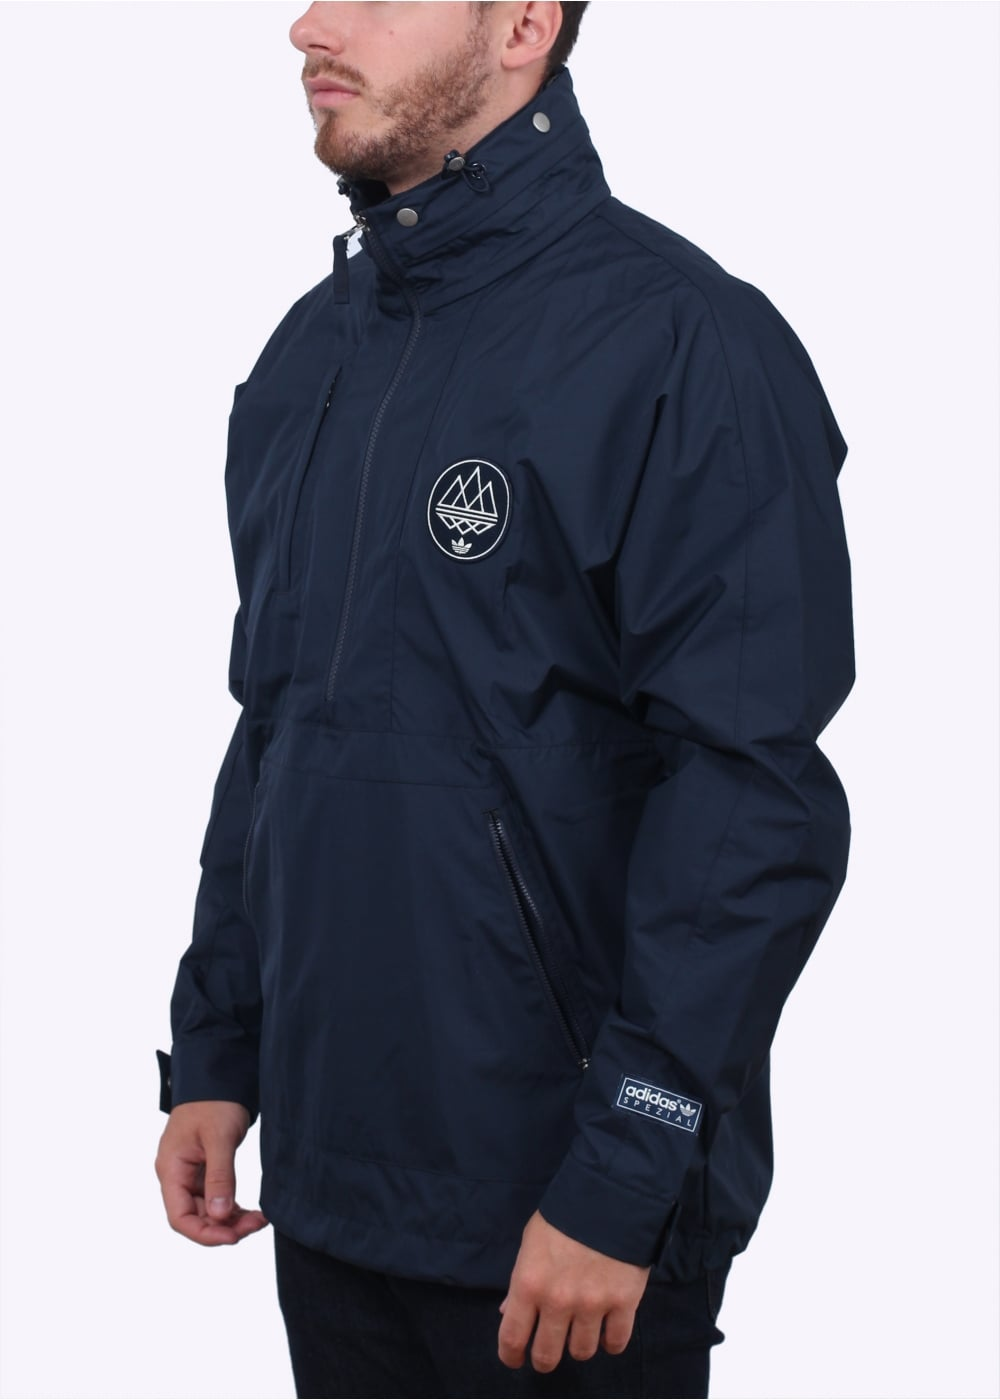 Adidas Originals Spezial Rishton Jacket Night Navy